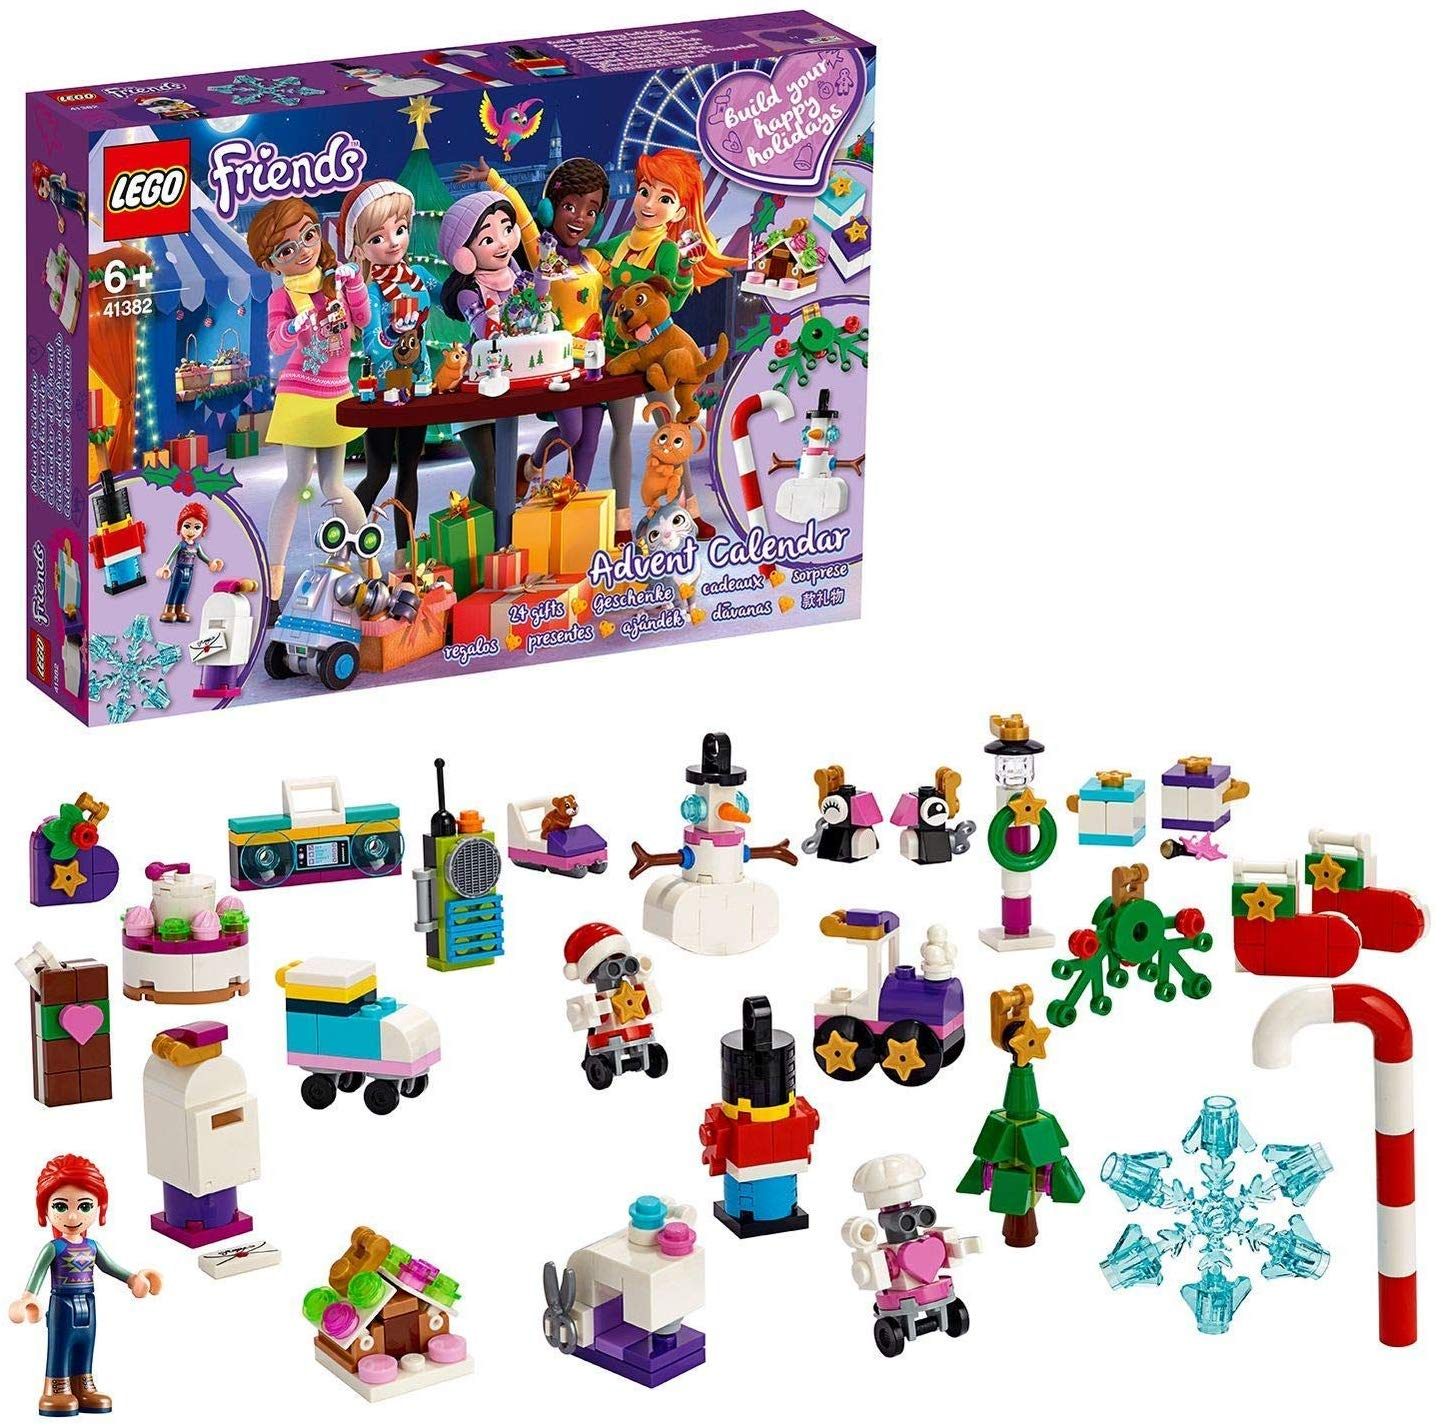 LEGO Friends Advent Calendar 2019 Christmas Decorations Set